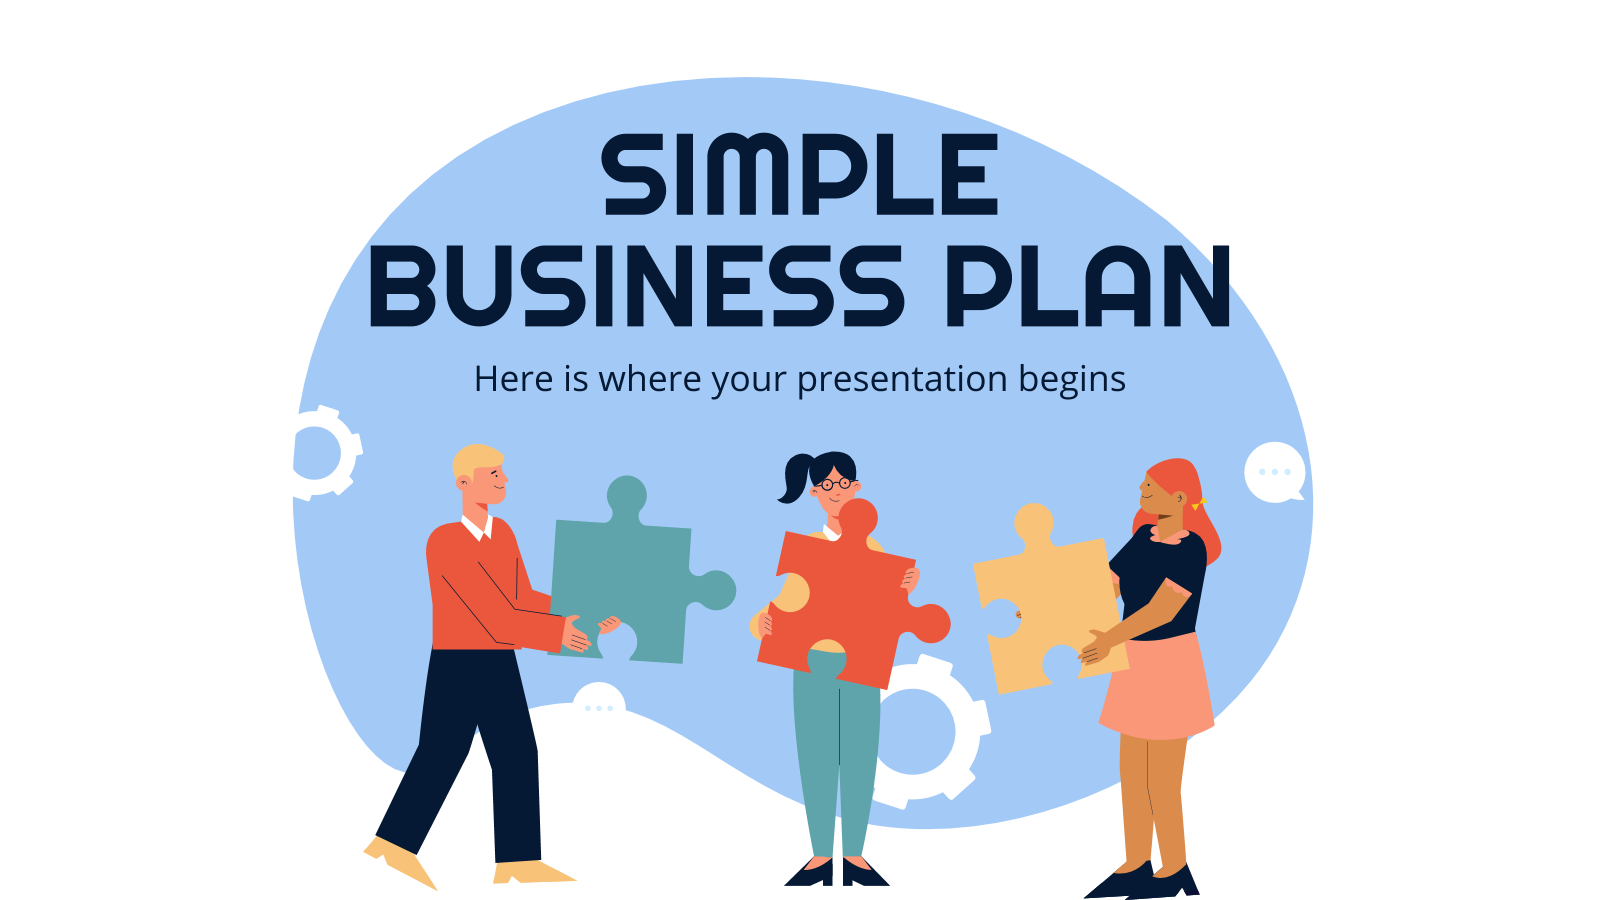 Simple Business Plan presentation template